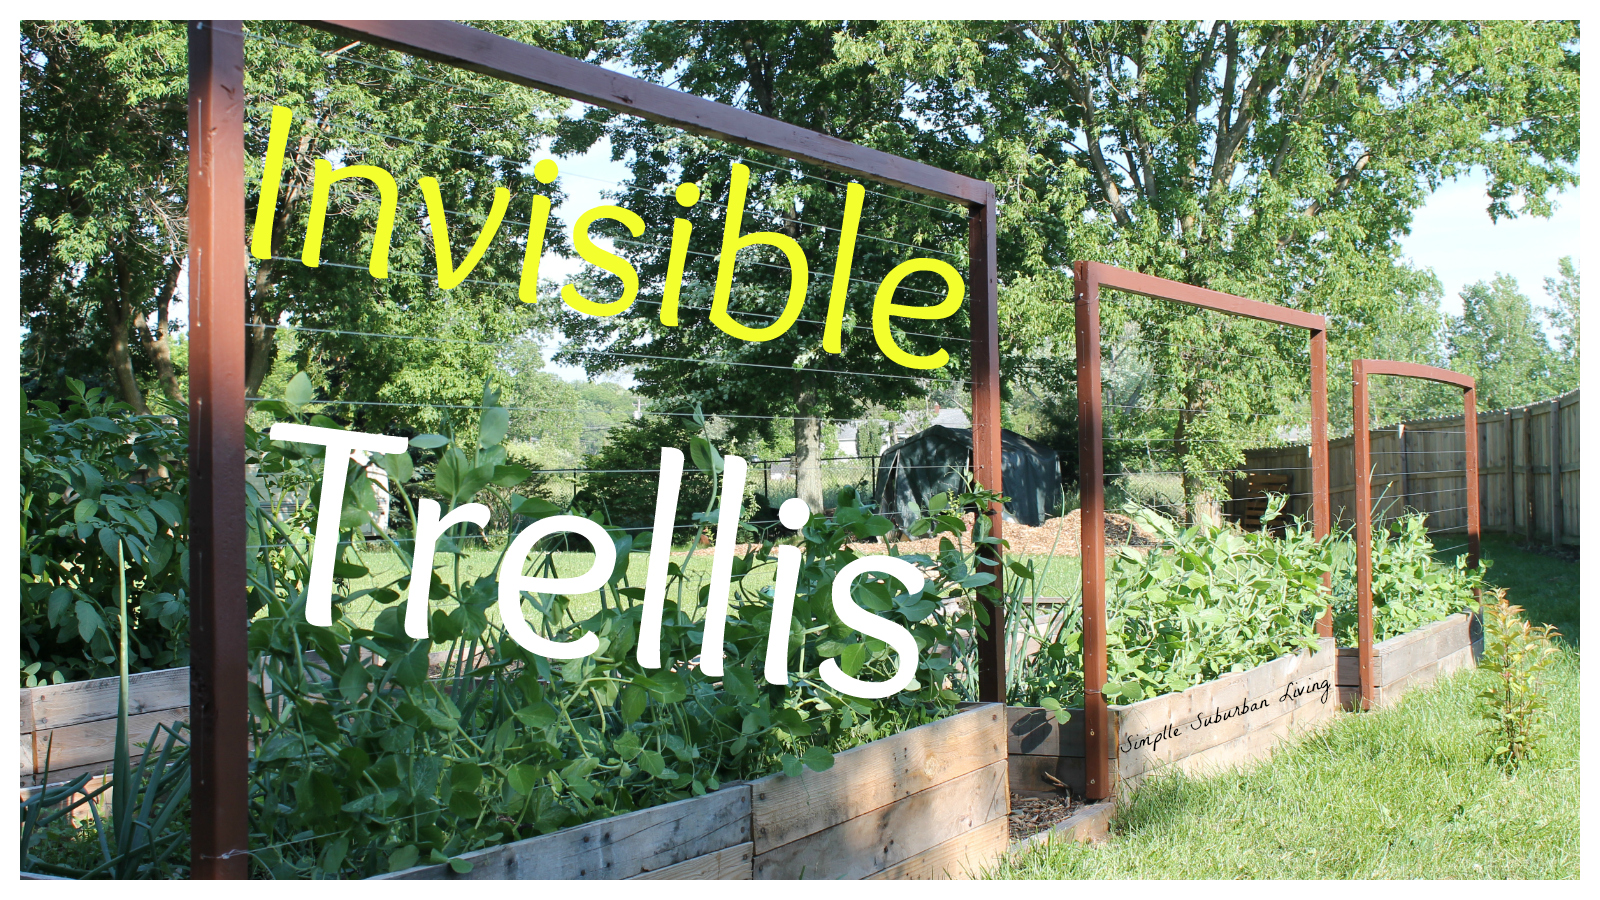 The Invisible Trellis   An Inexpensive Raised Bed Trellis System